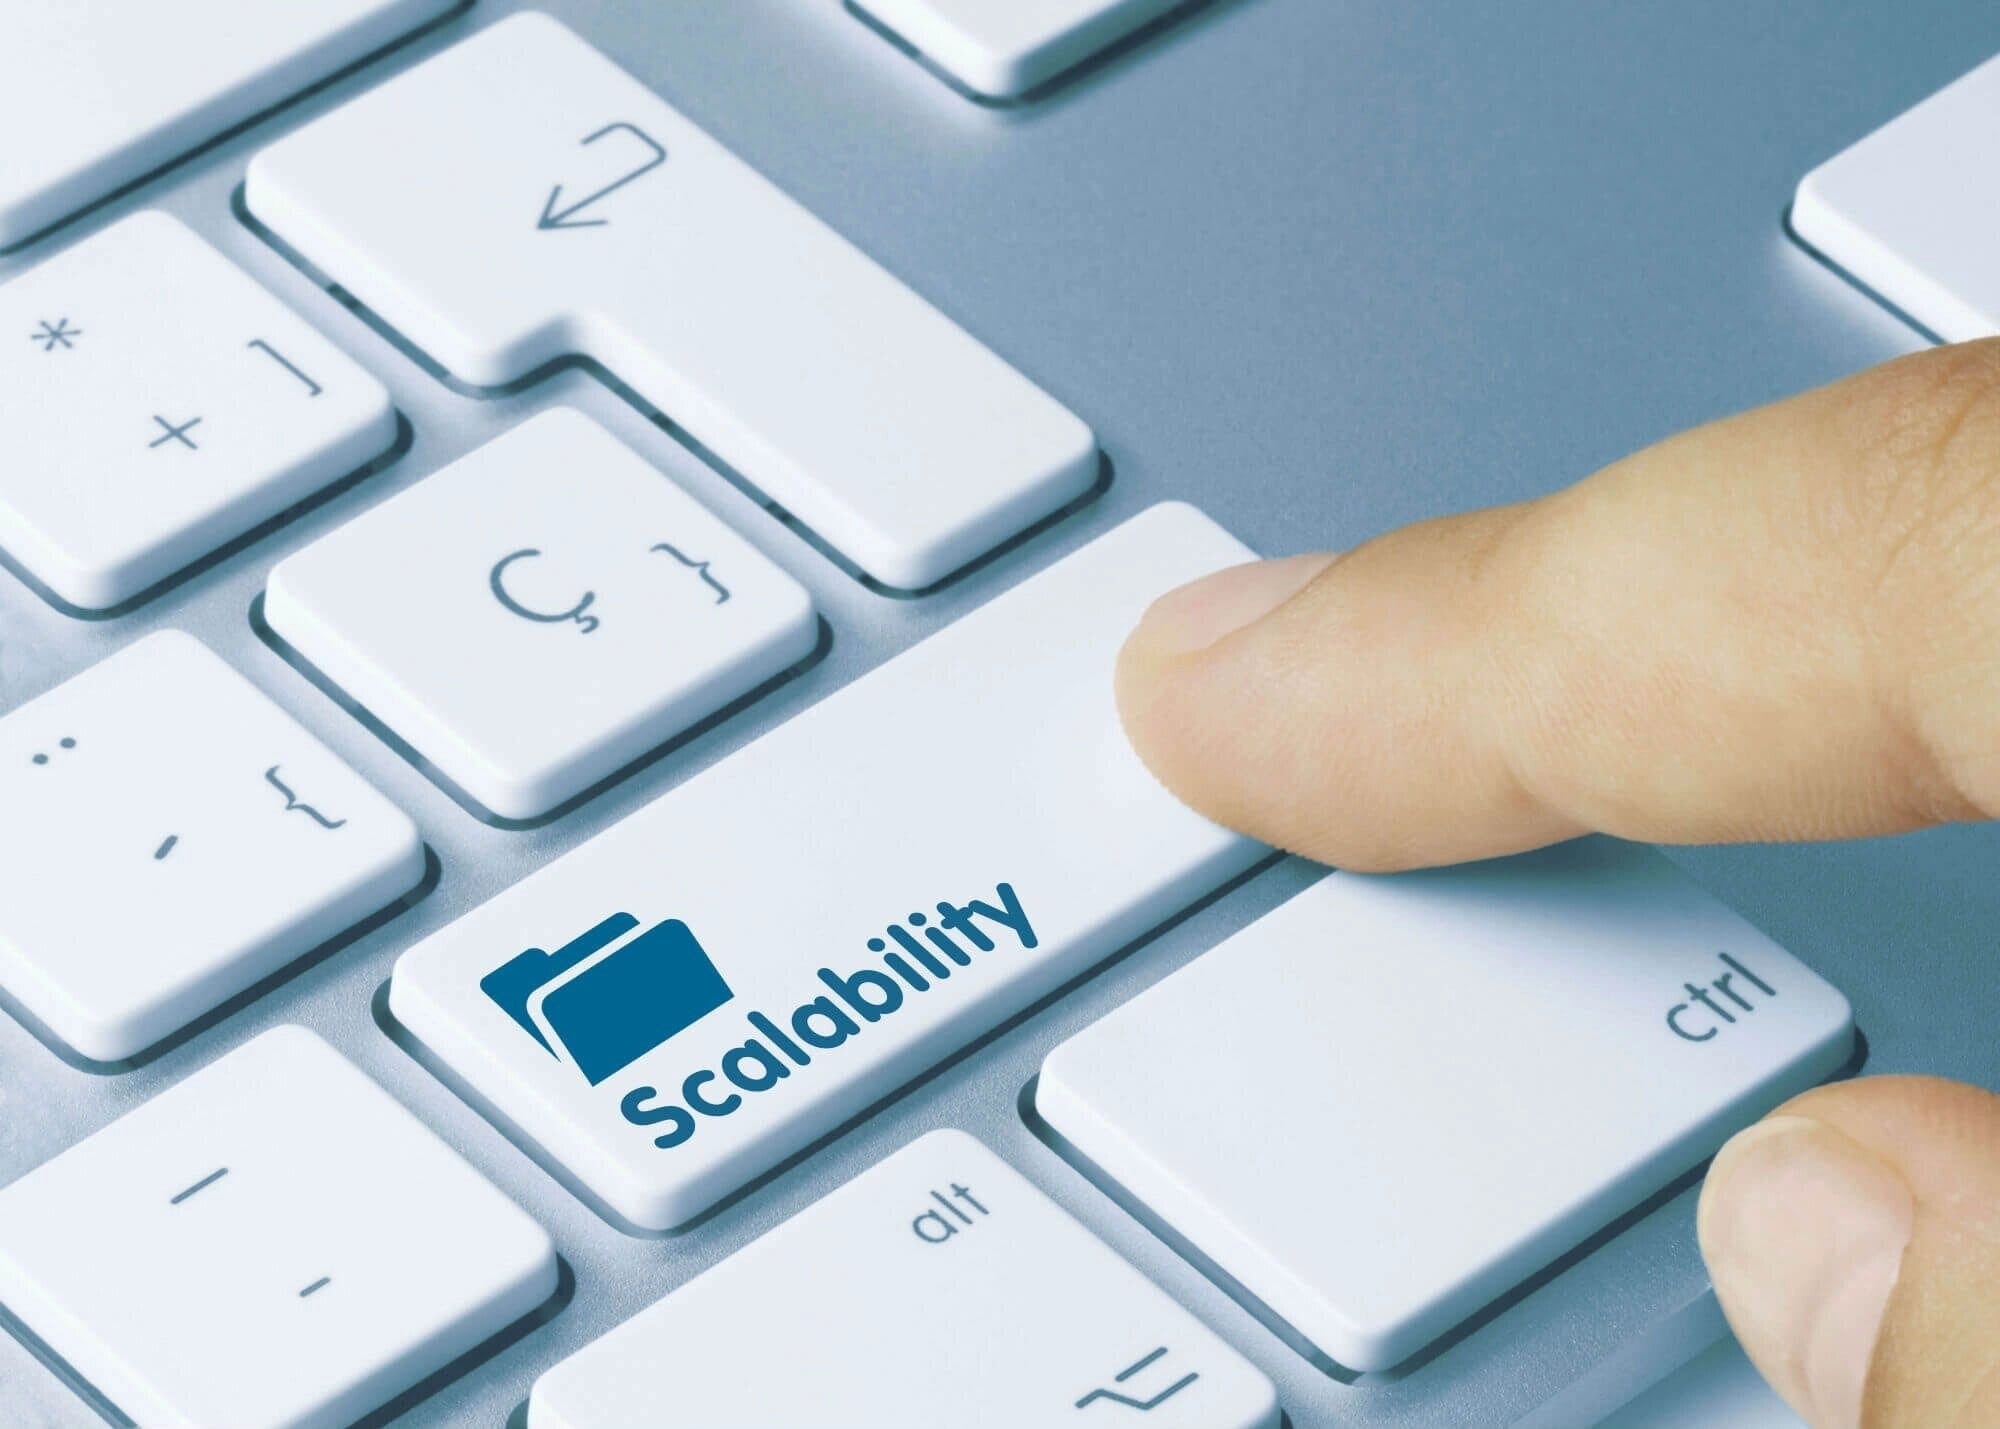 finger pressing key that says scalability